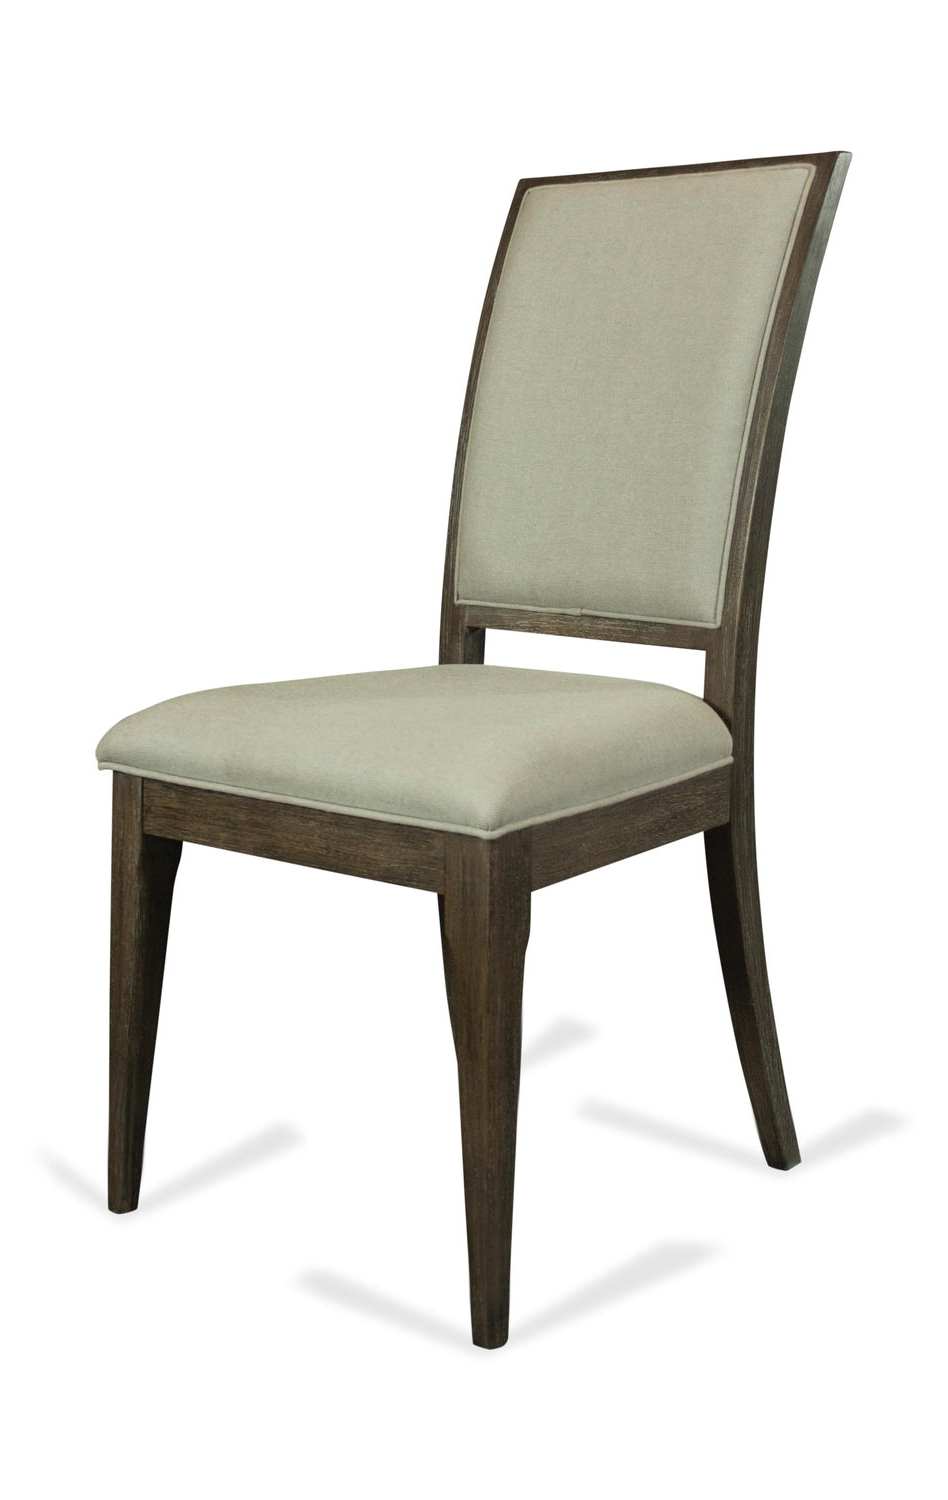 Hom Furniture Within Favorite Craftsman Upholstered Side Chairs (Gallery 2 of 20)